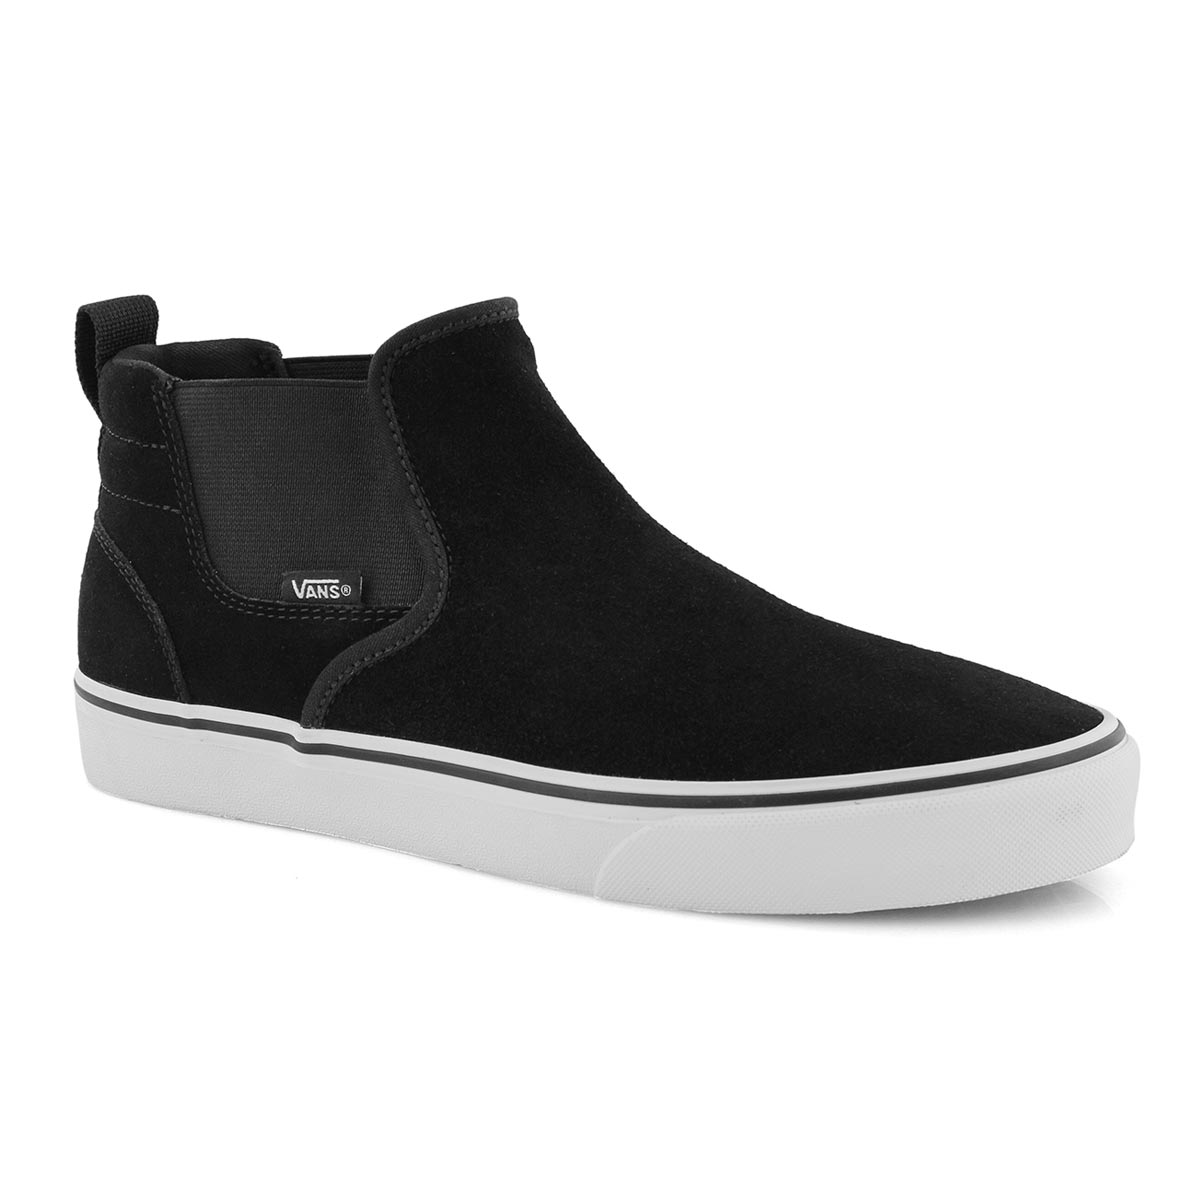 Mns Asher Mid blk slip on sneaker